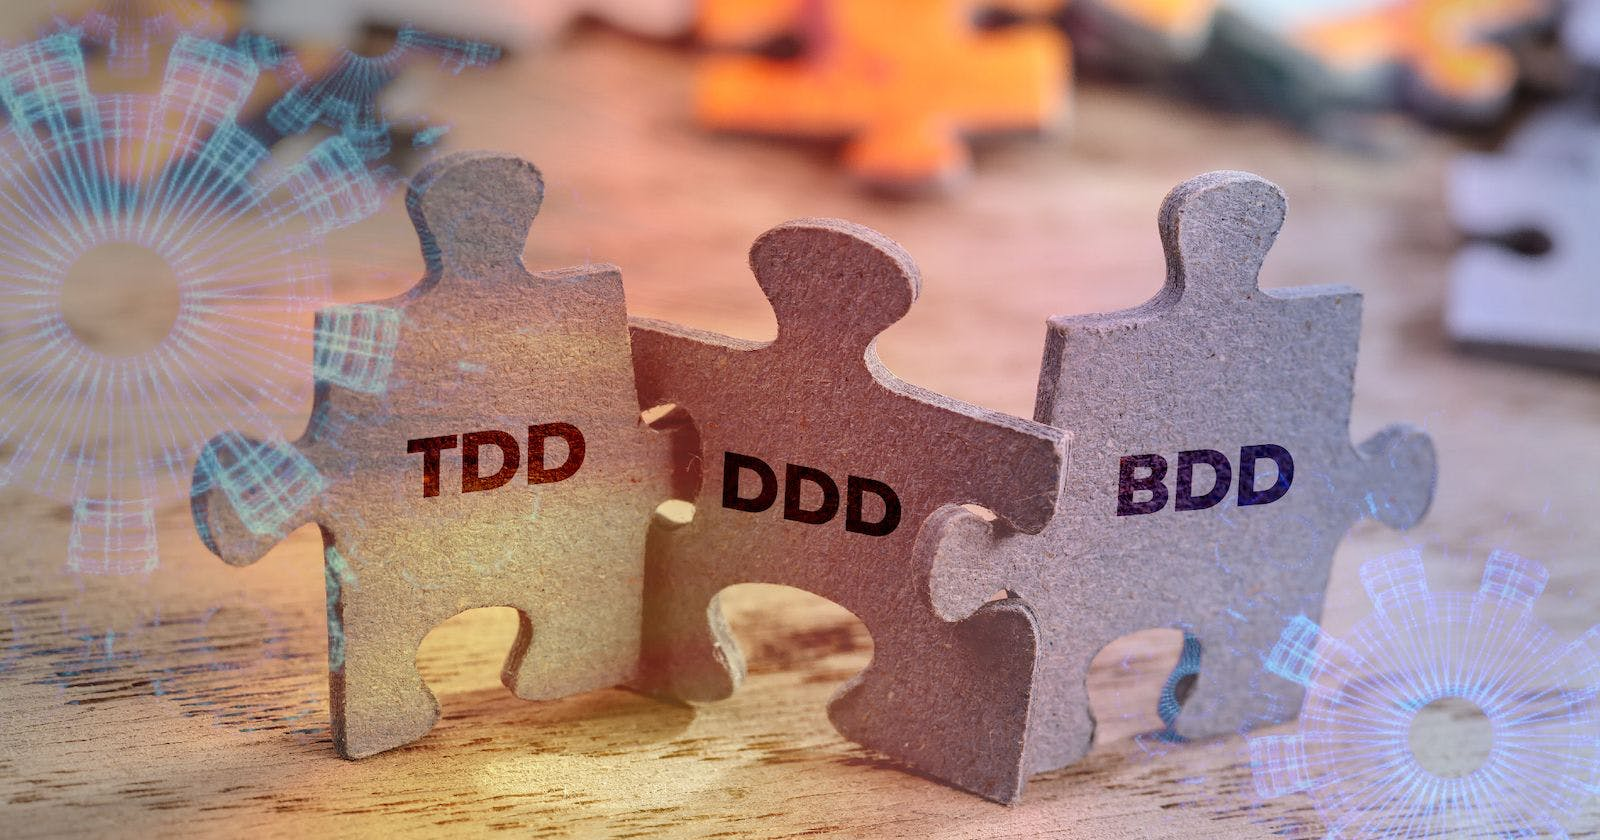 The Value at the Intersection of TDD, DDD, and BDD